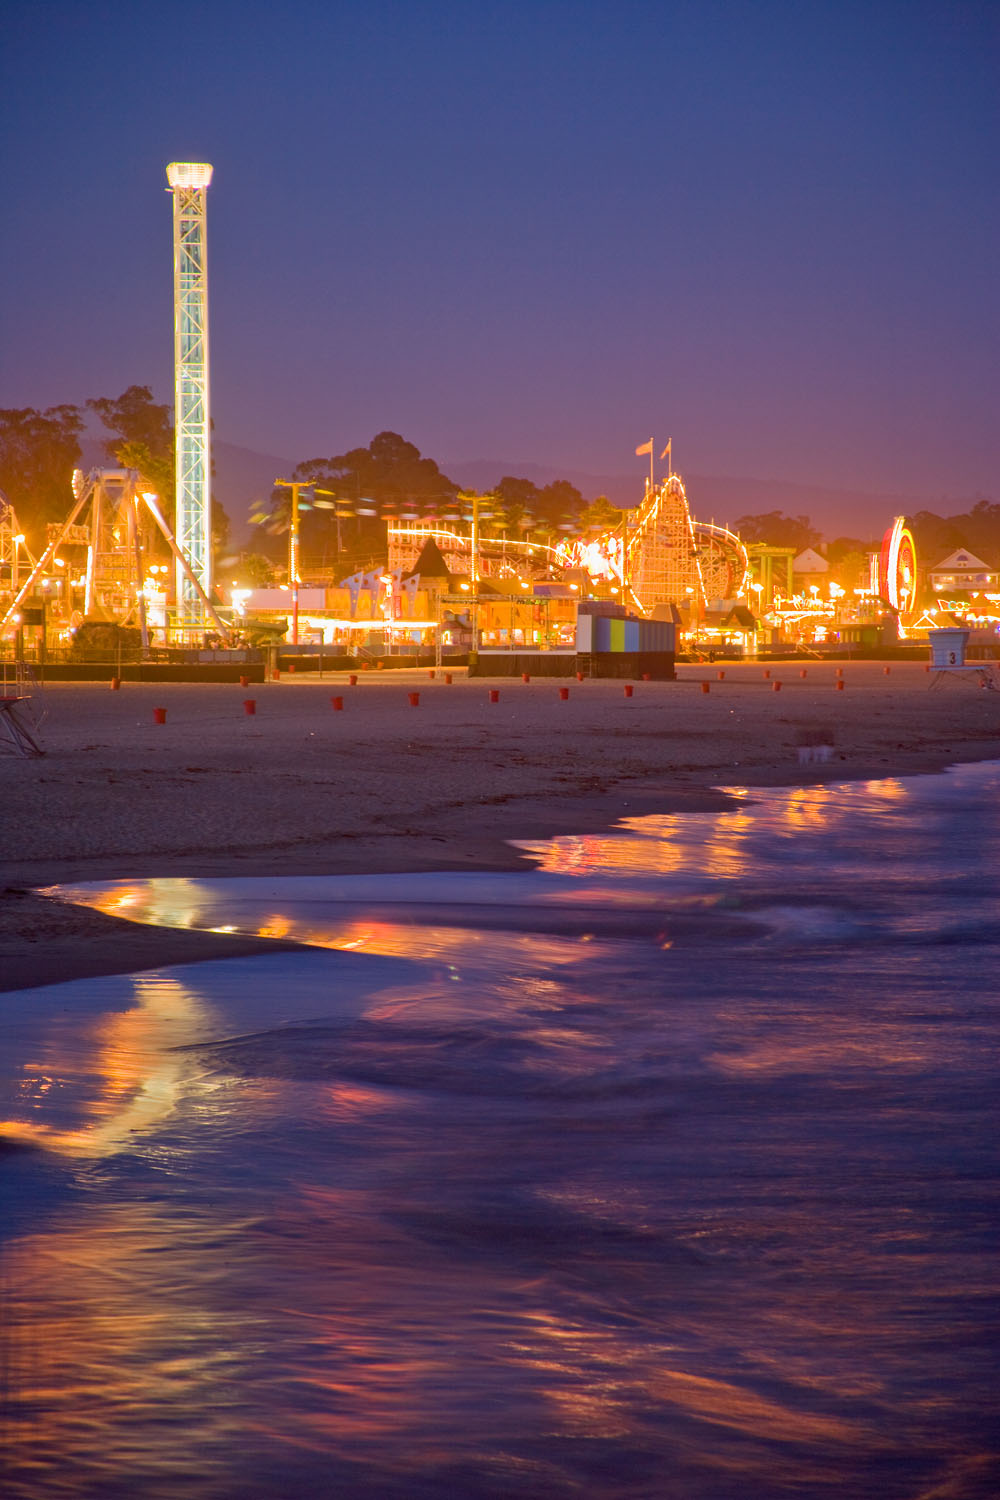 Santa_Cruz_Reflection